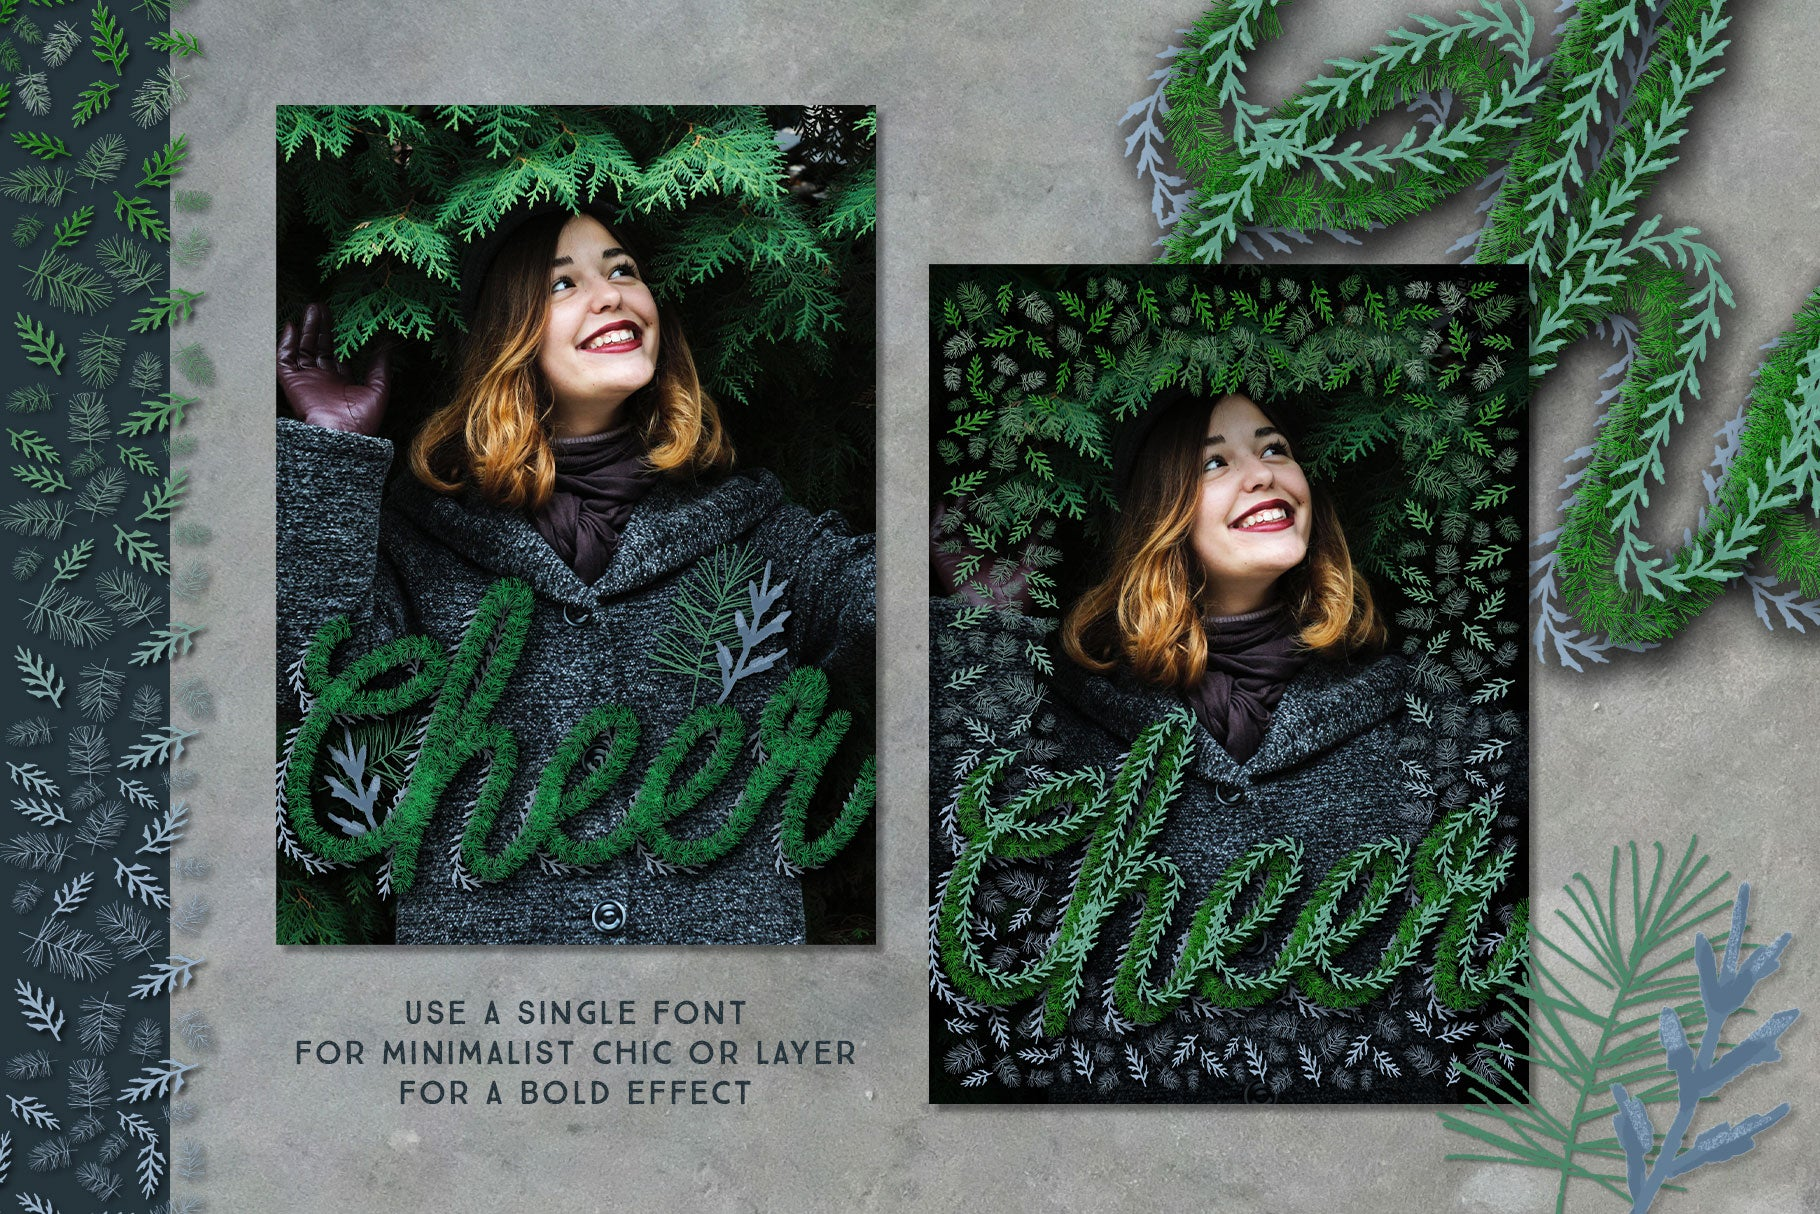 Luxe Christmas & Holiday Greenery Alphabets: holiday cheer greeting card design